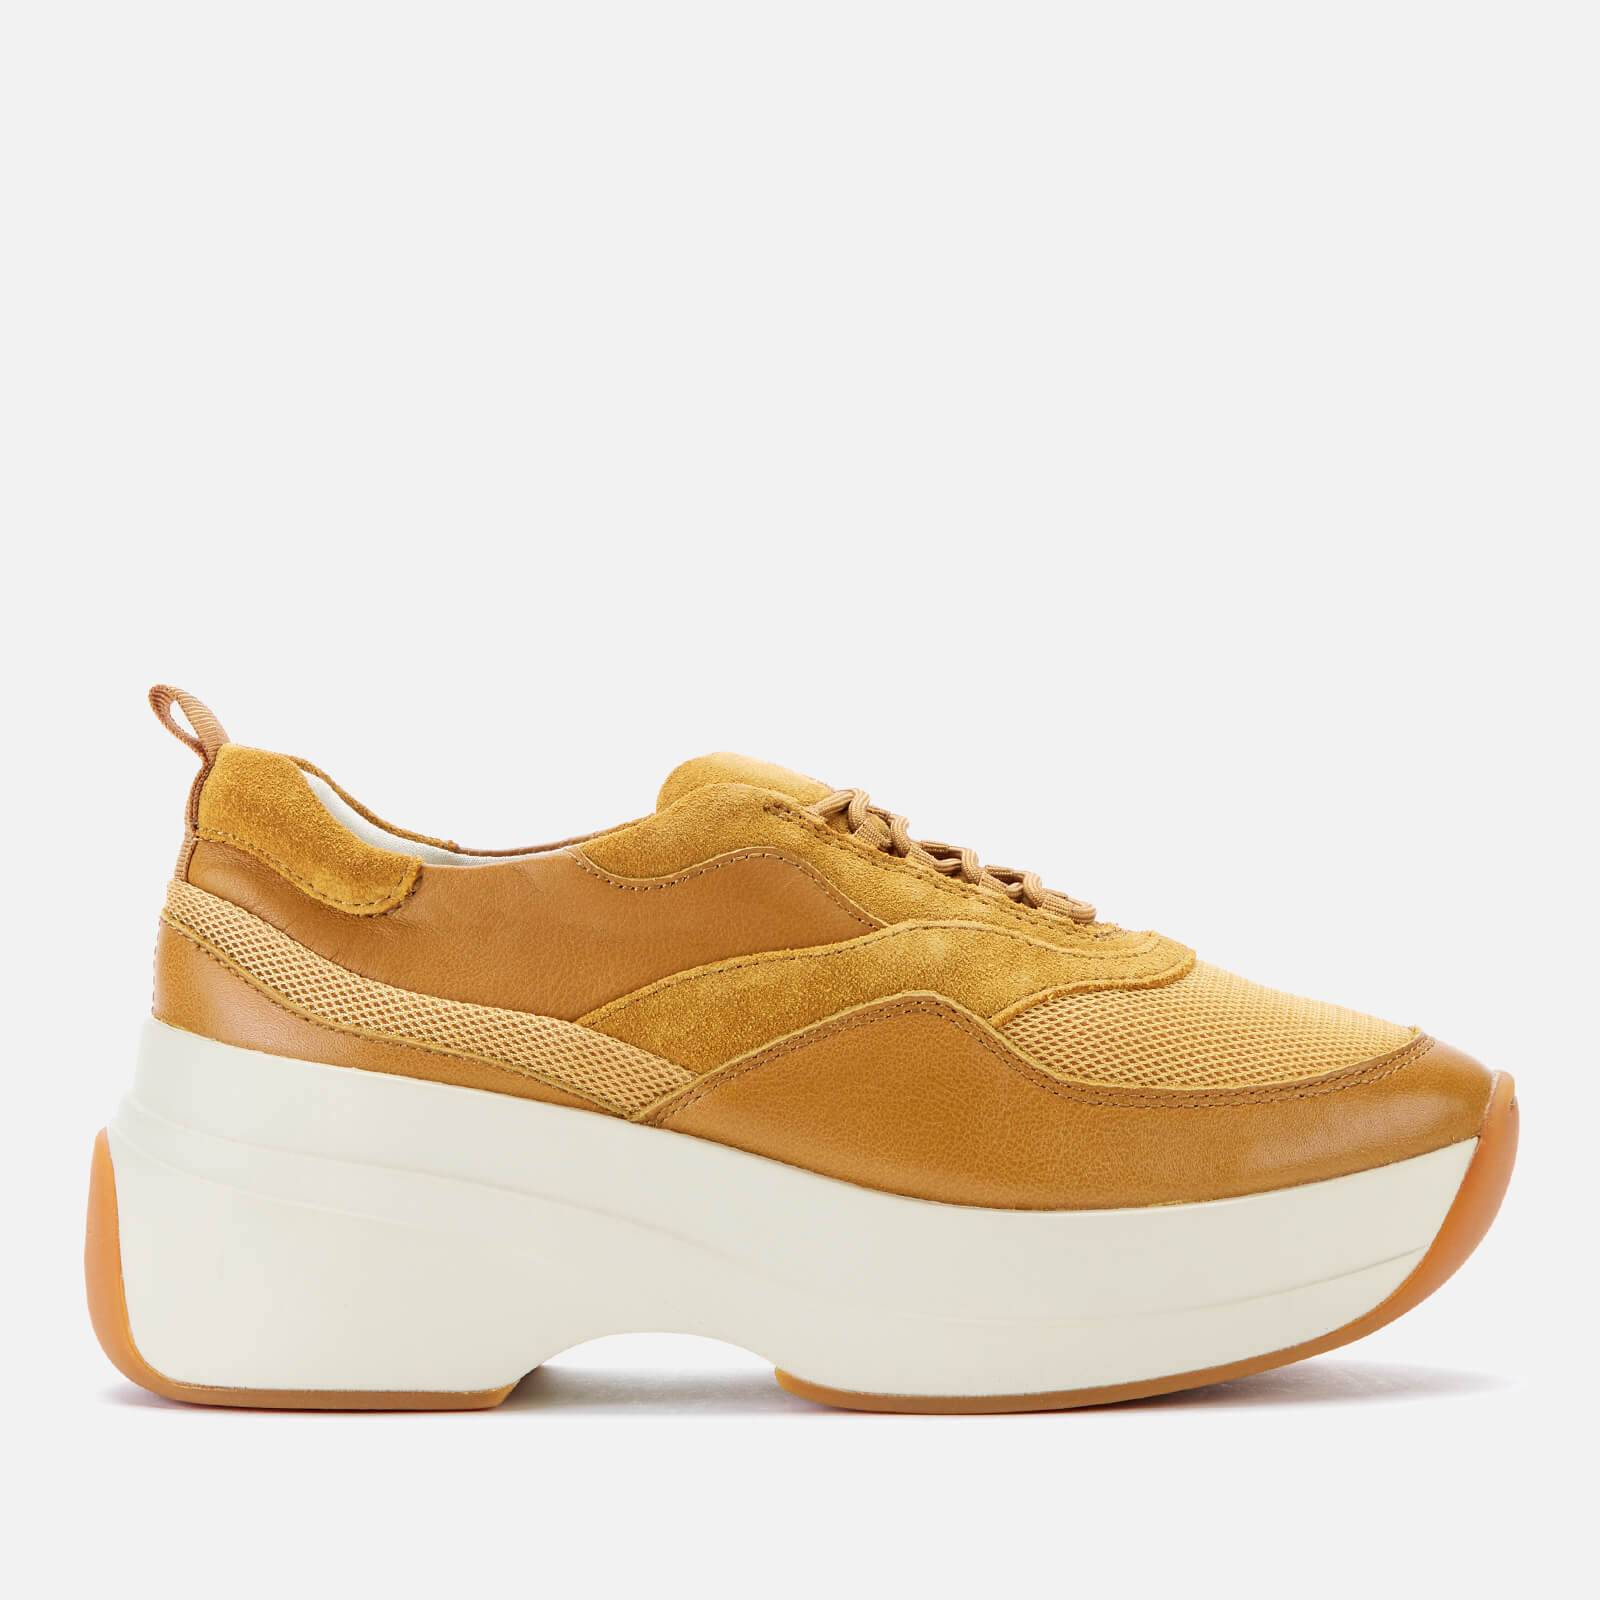 Vagabond Women's Sprint 2.0 Chunky Trainers - Golden Oat - UK 4 - Yellow